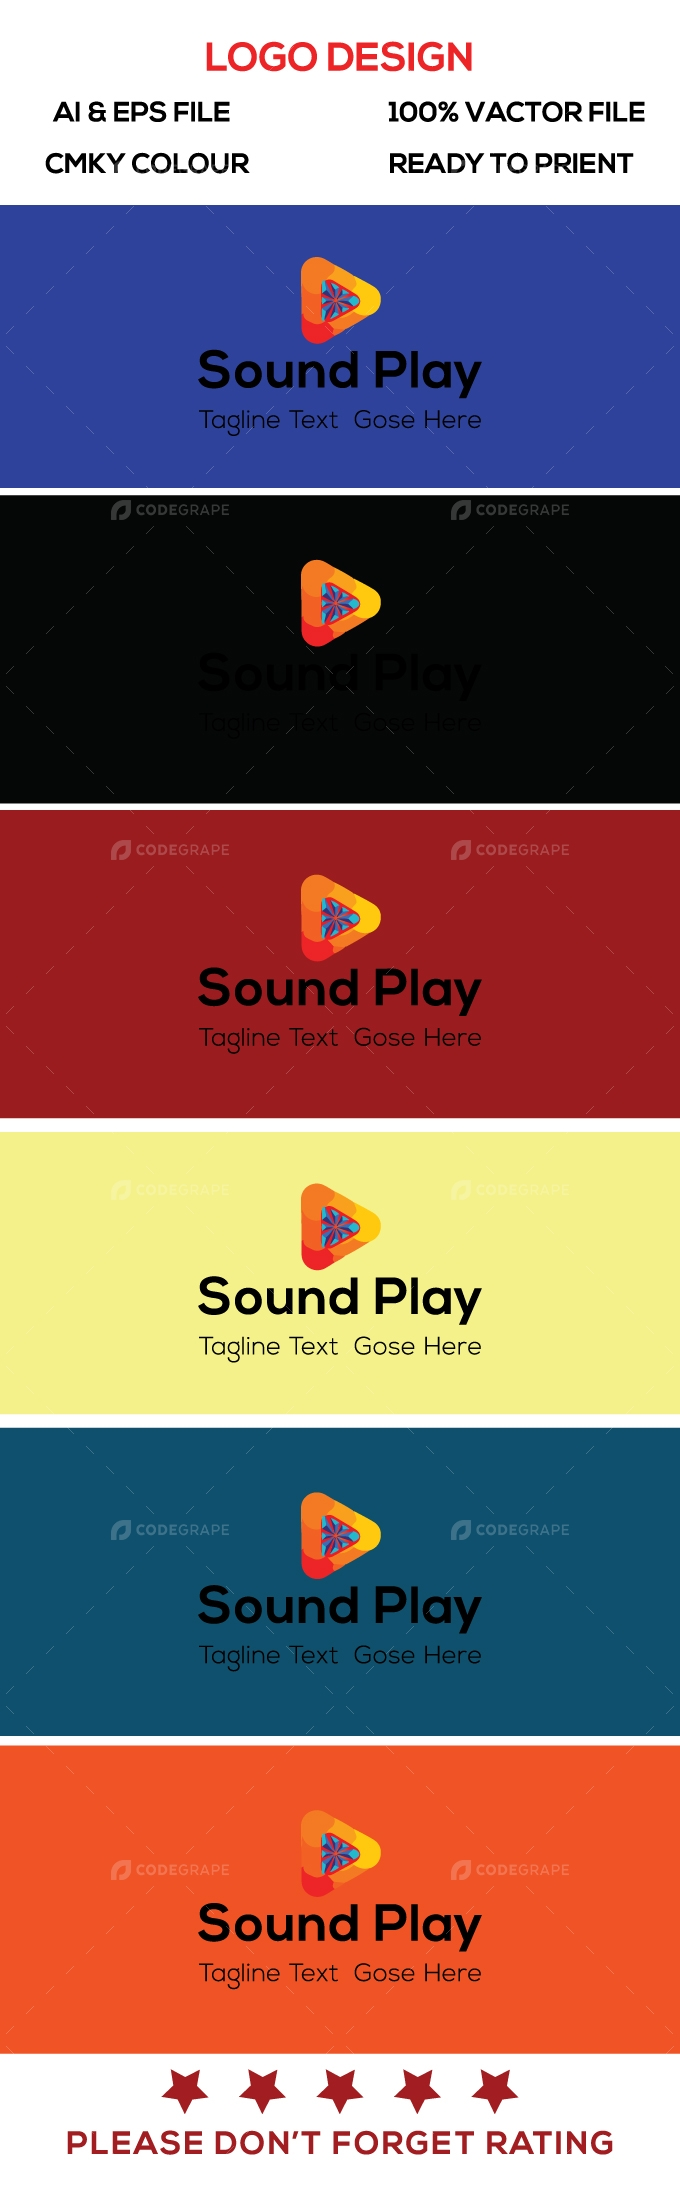 Sound Play Logo